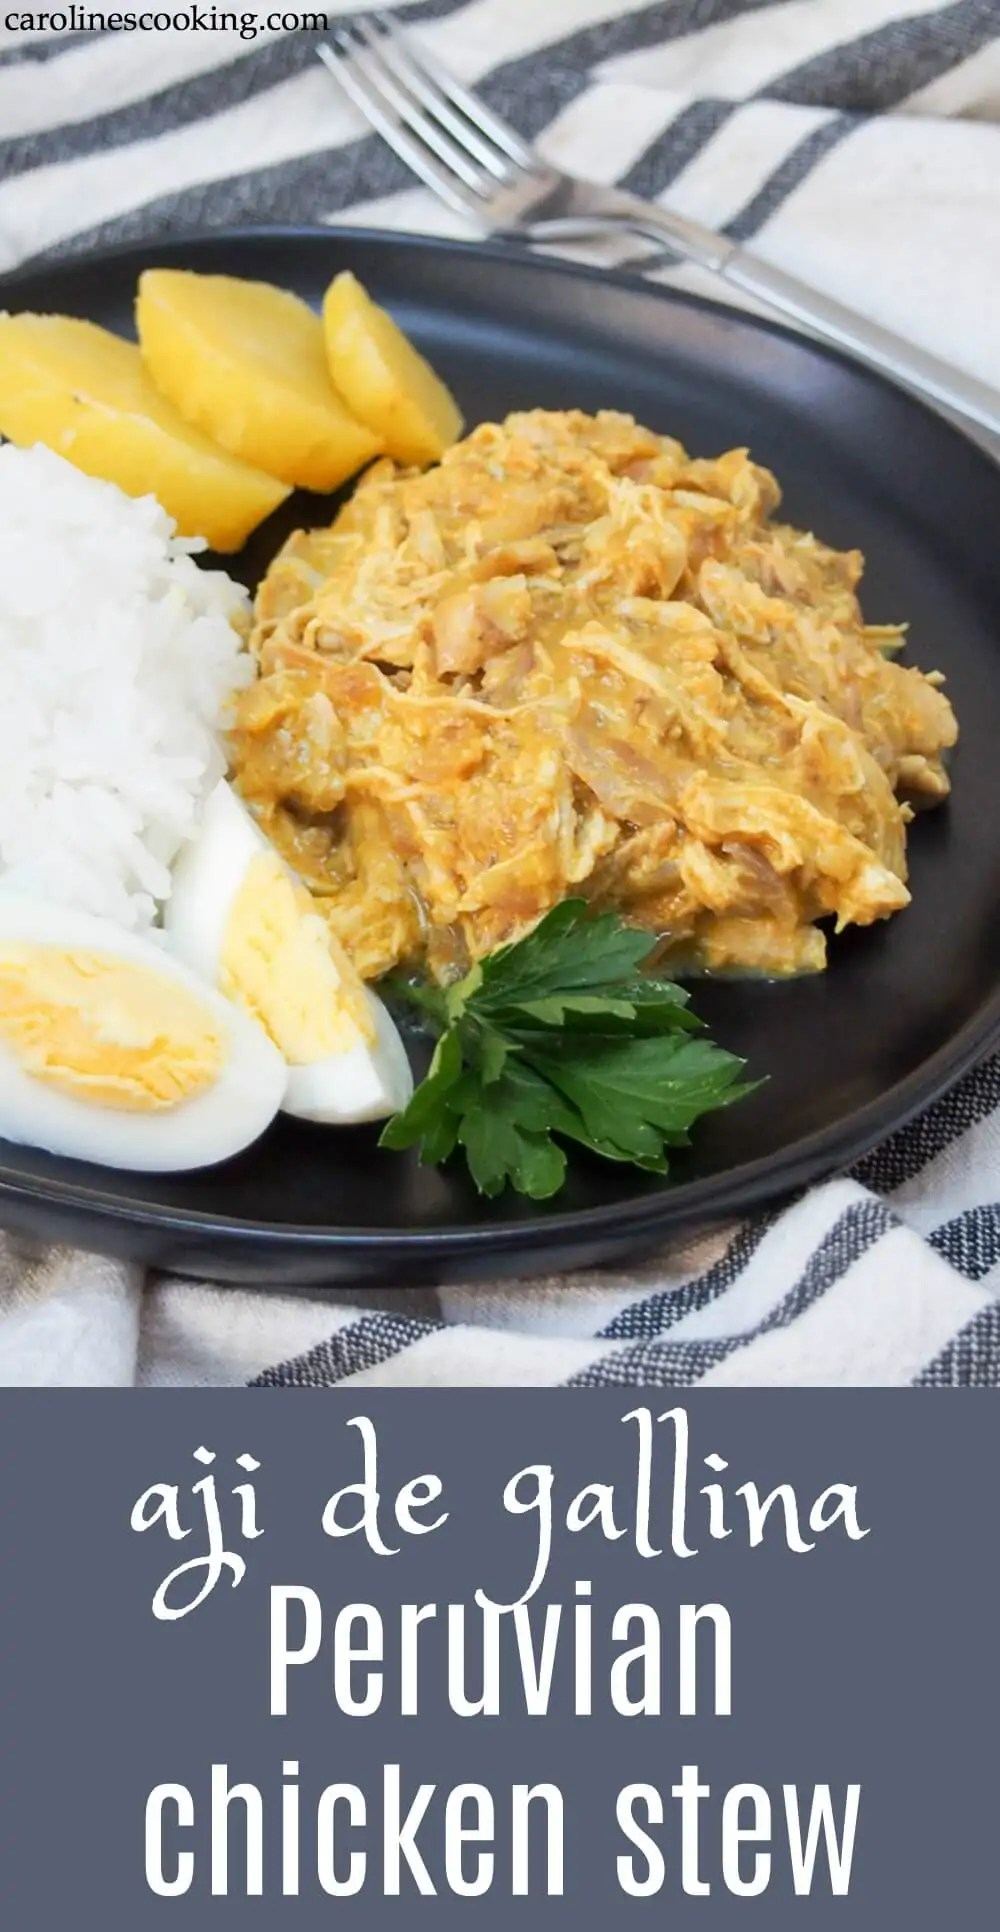 Aji de gallina is a classic Peruvian dish, with shredded chicken wrapped in a smooth, creamy sauce with chili, cheese and walnuts. It's a delicious meal, plus perfect to adapt for leftovers (both chicken and turkey). It's also great to make ahead.#Peruvianrecipe #chicken #leftovers #comfortfood